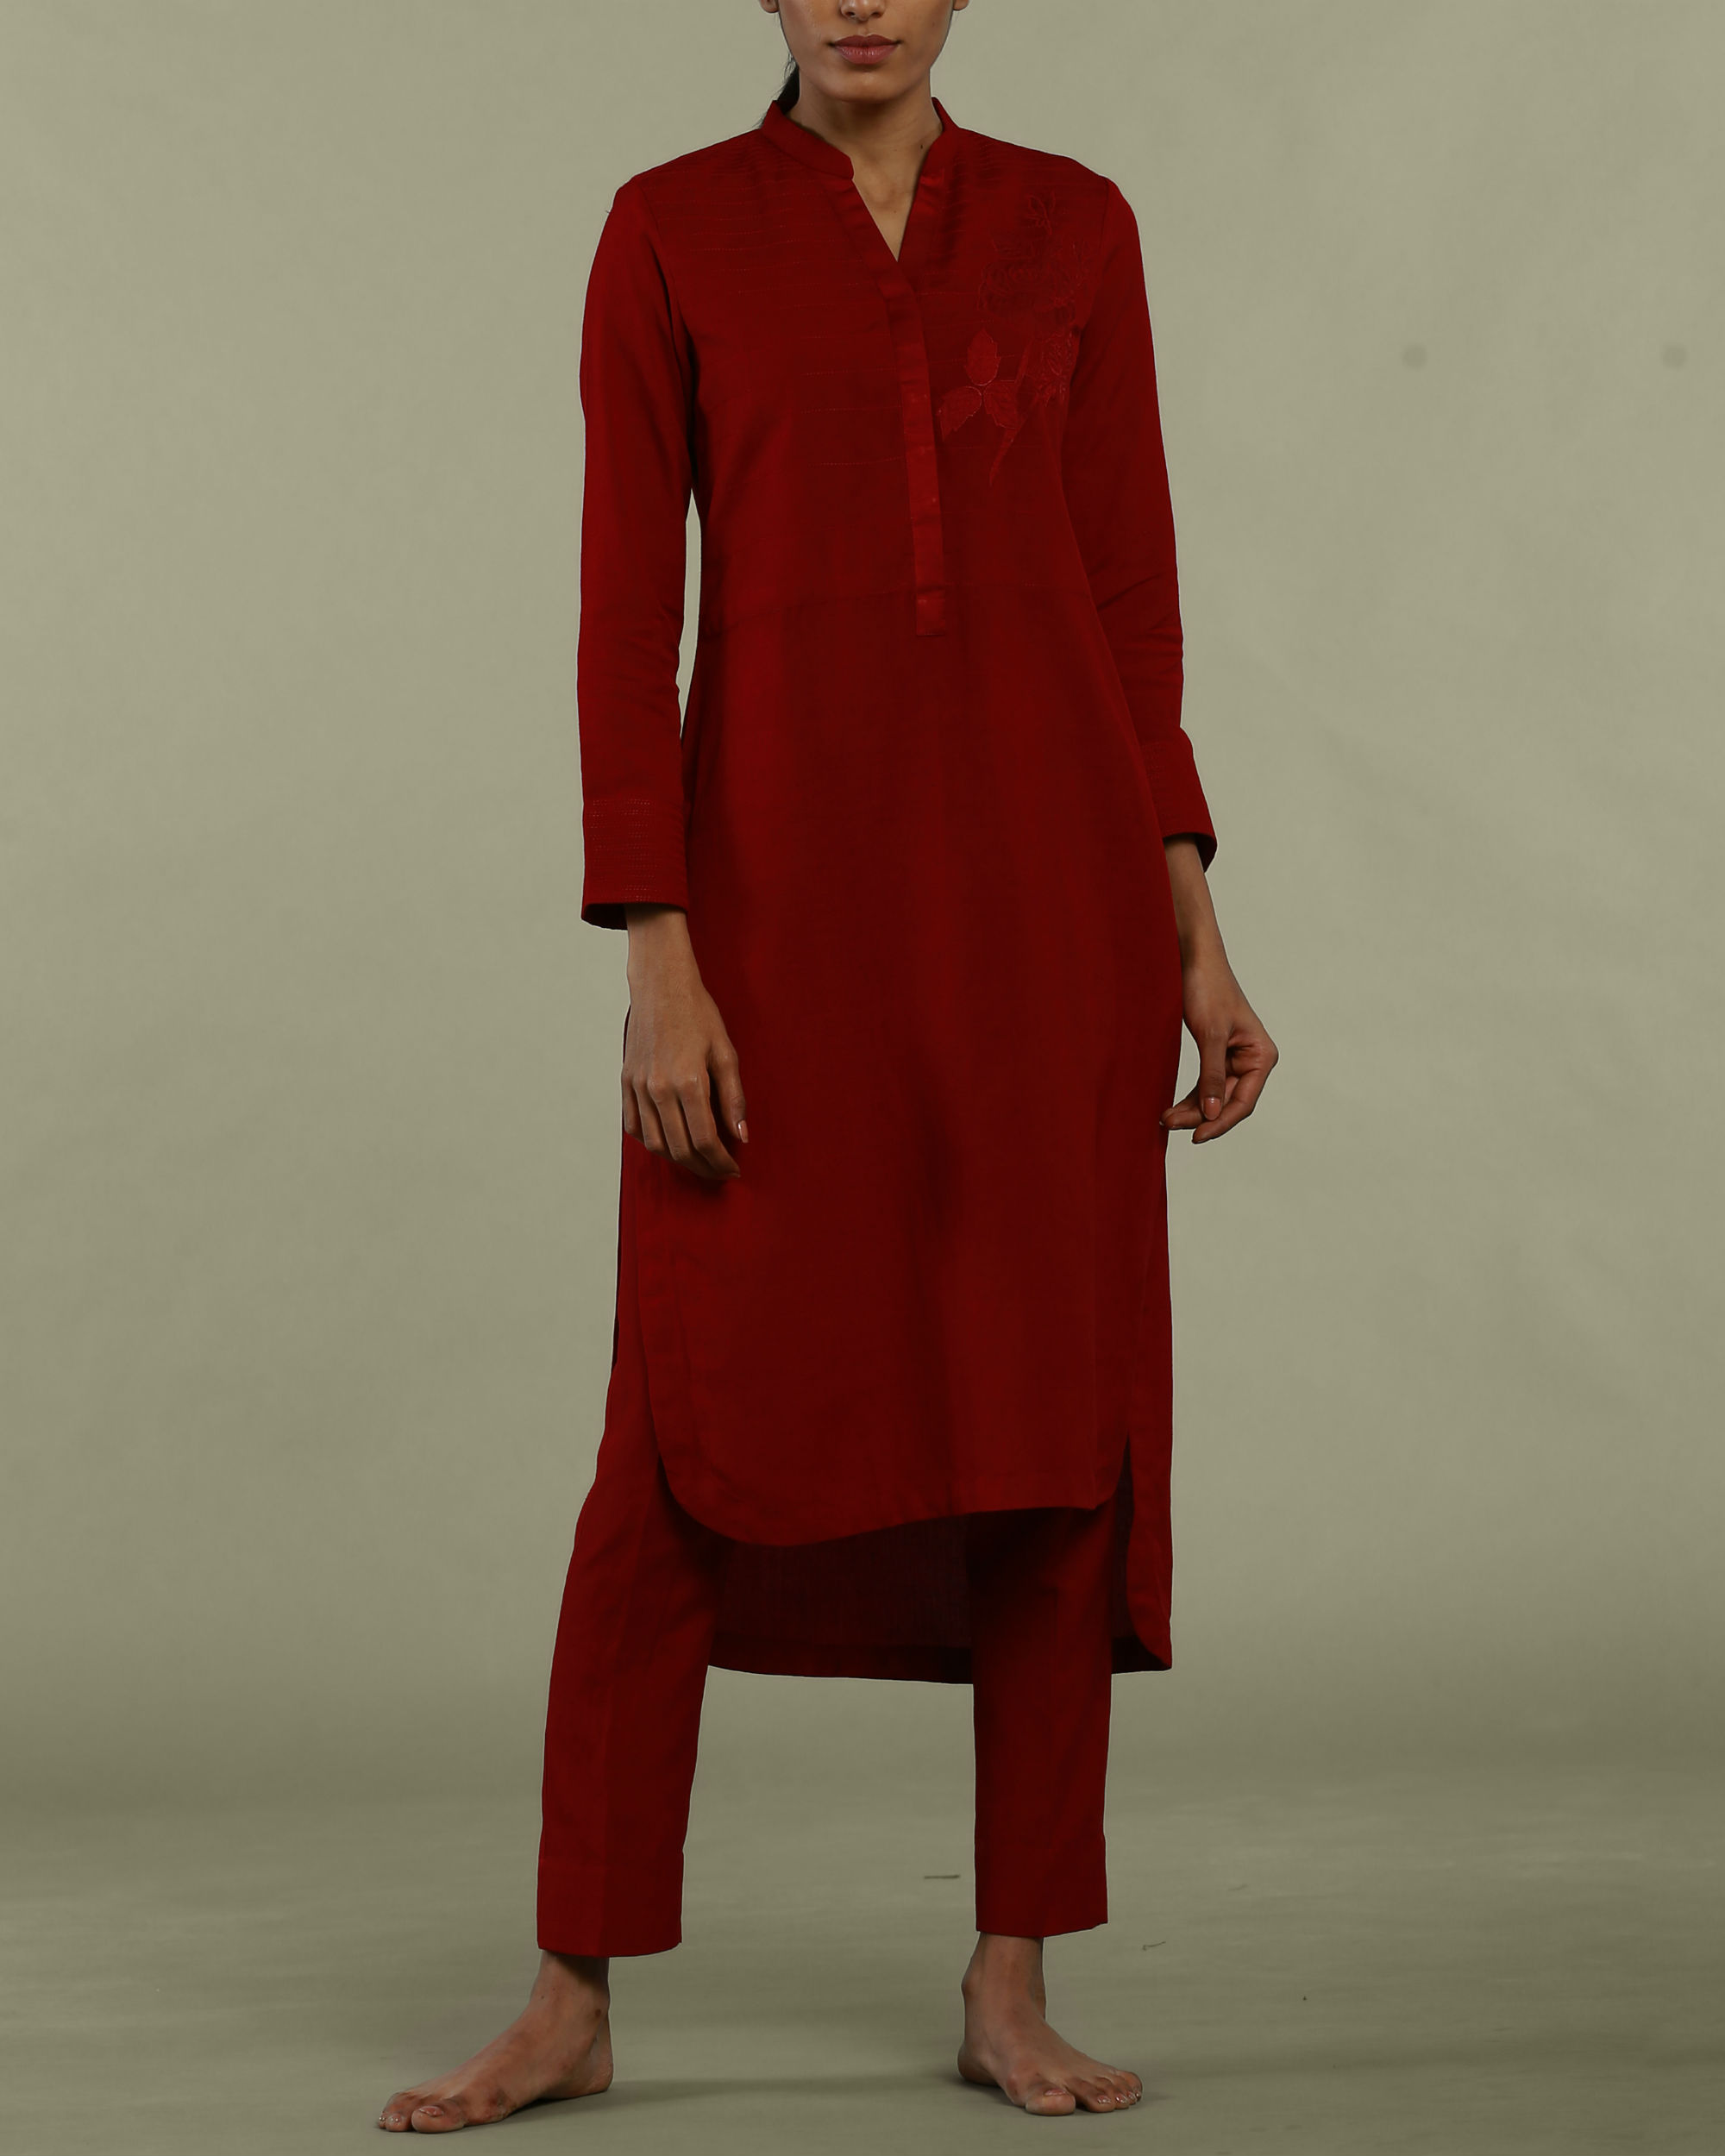 Red tunic with collared neckline